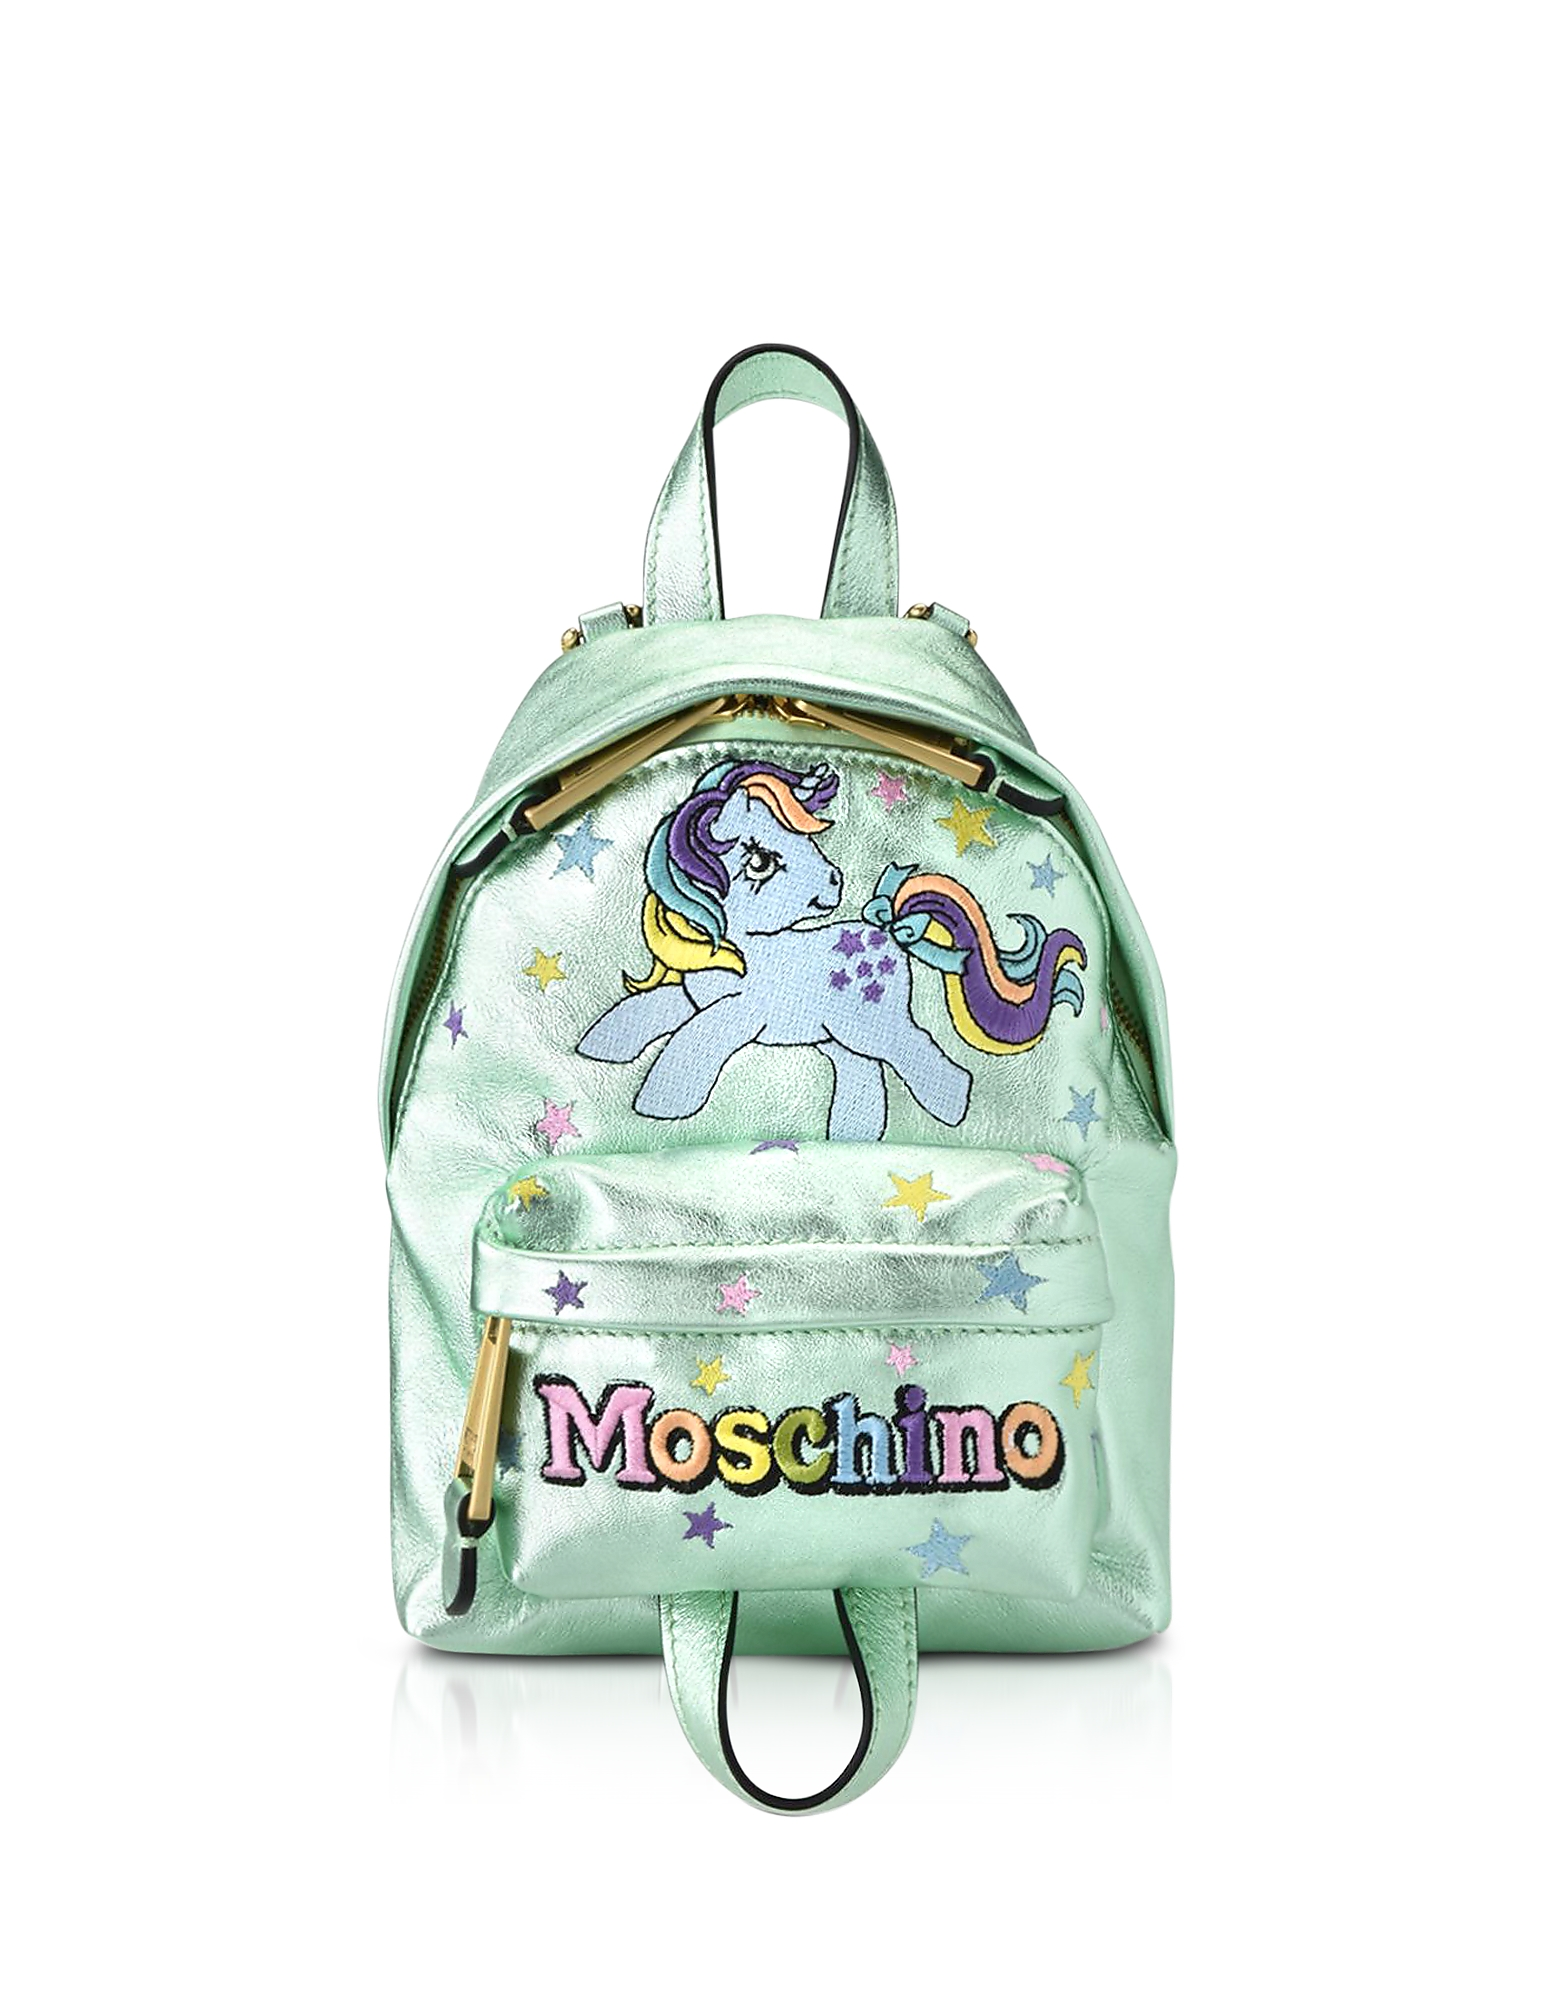 Moschino My Little Pony Laminated Leather Backpack